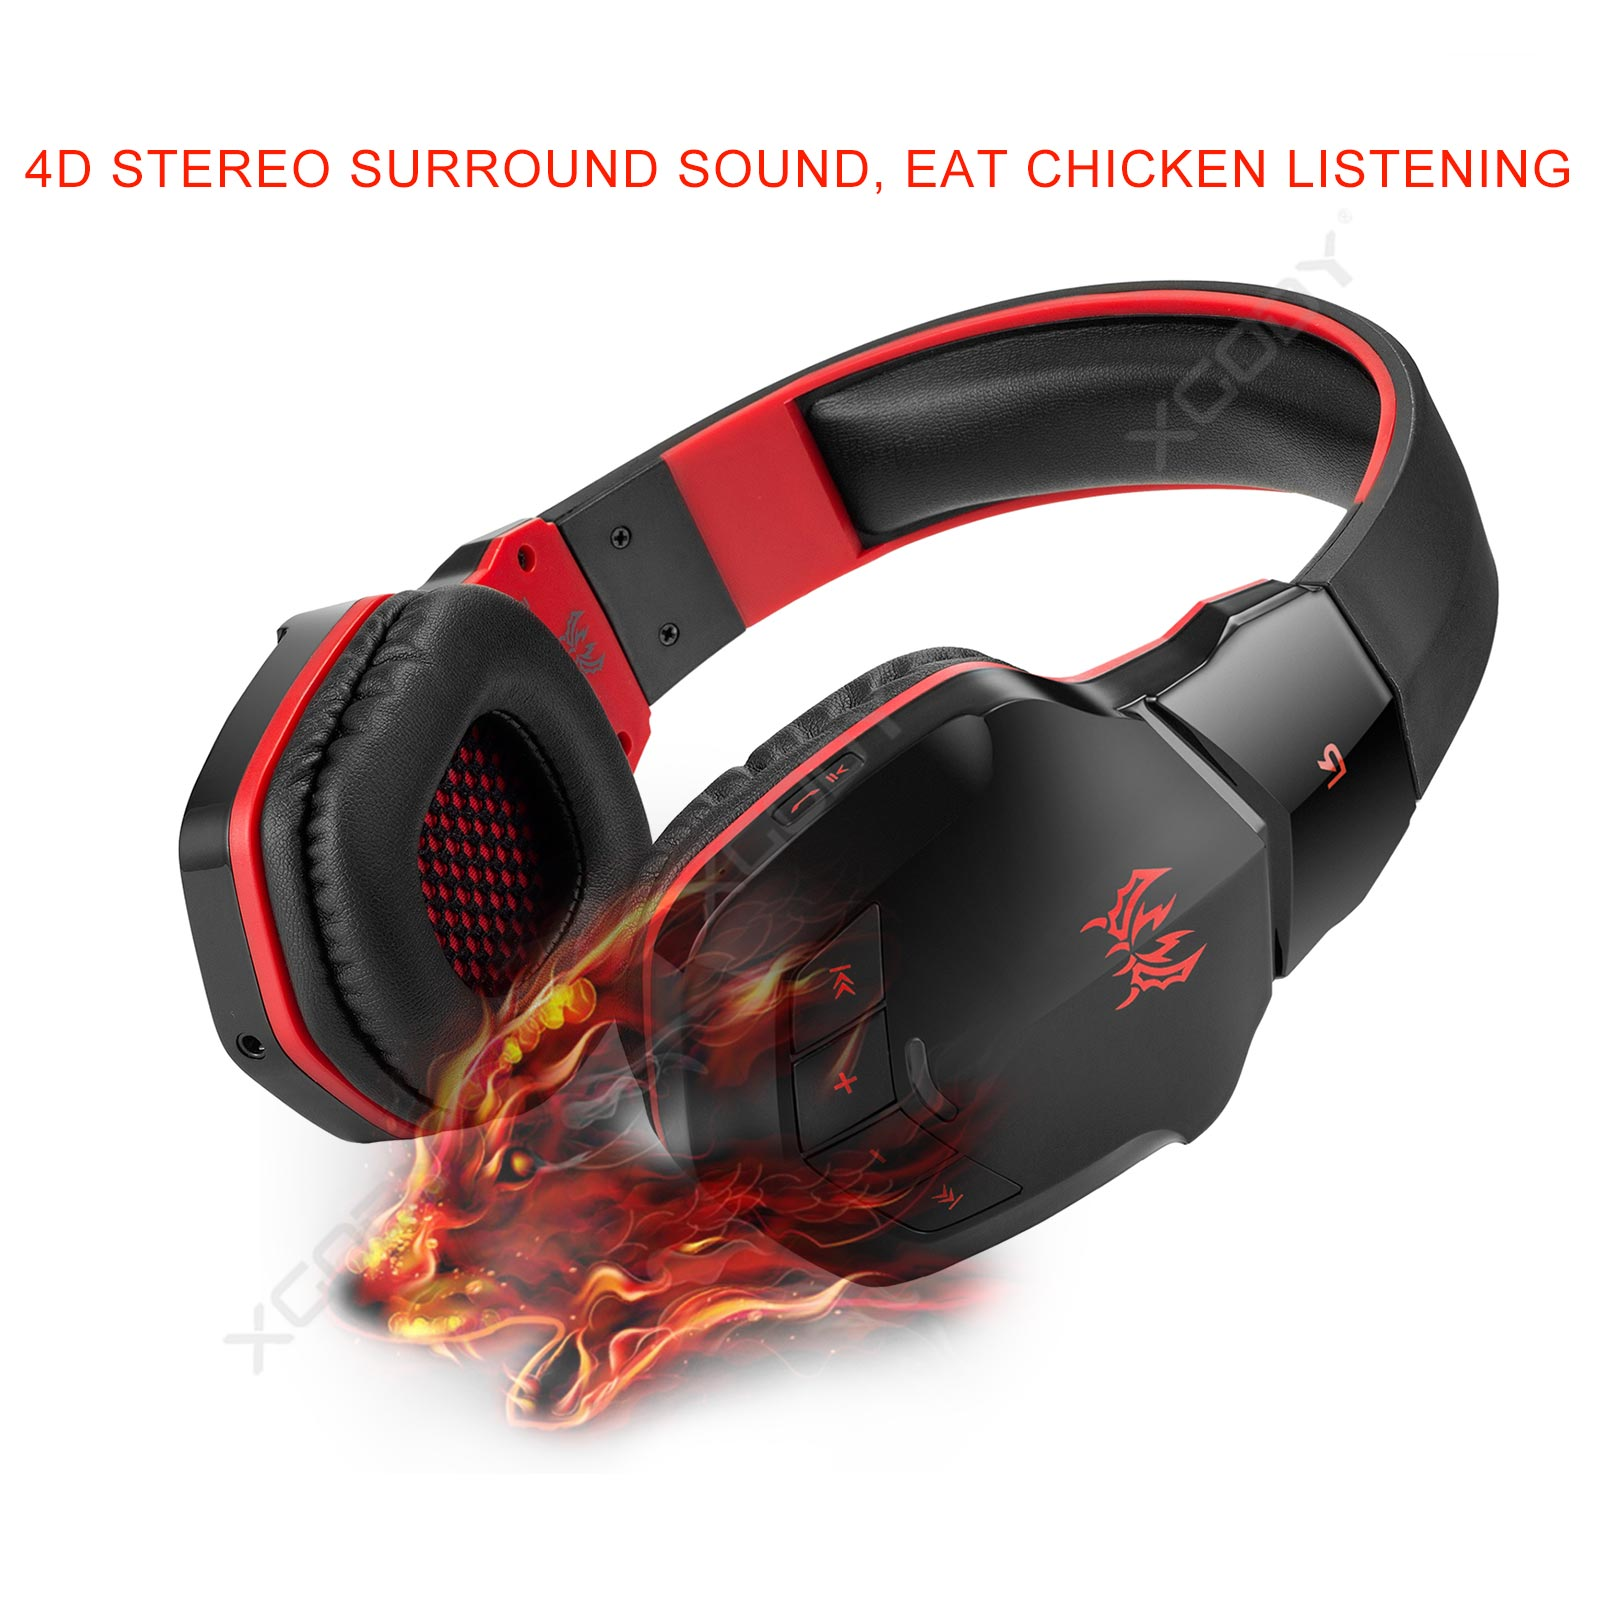 4 1 Bluetooth Estereo Inalambricos Kotion Cada B3505 Gaming Headset Mic Auriculares Ebay